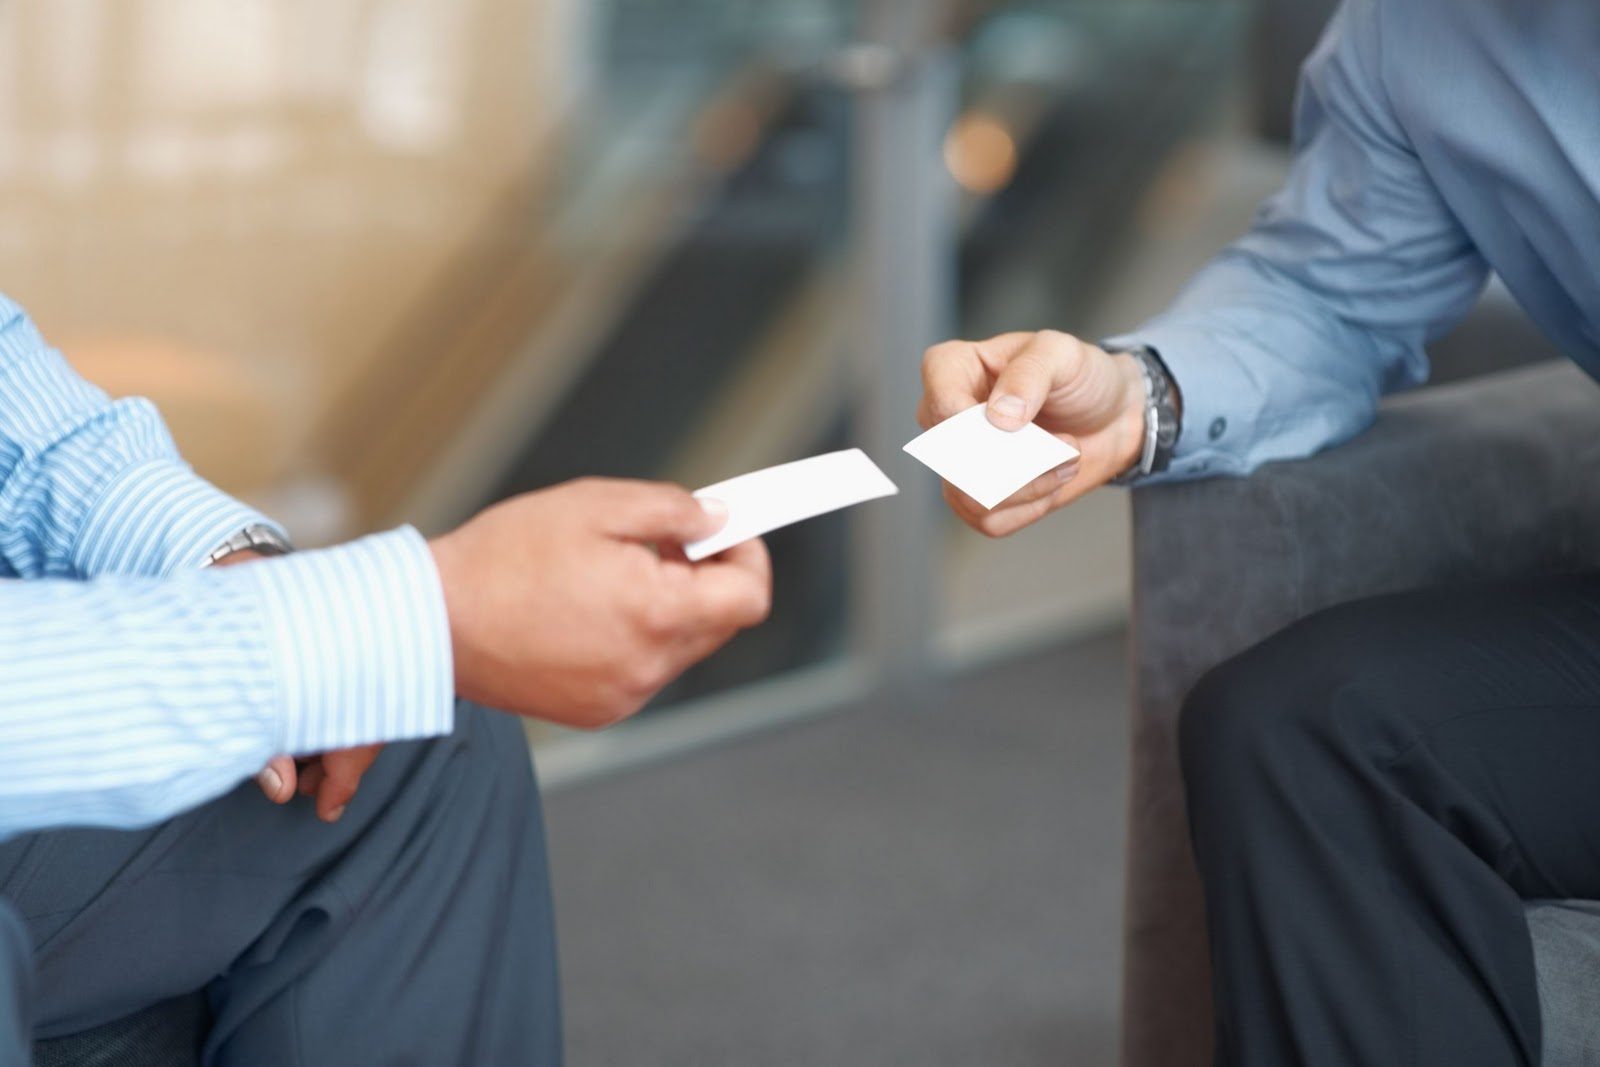 men exchanging business cards